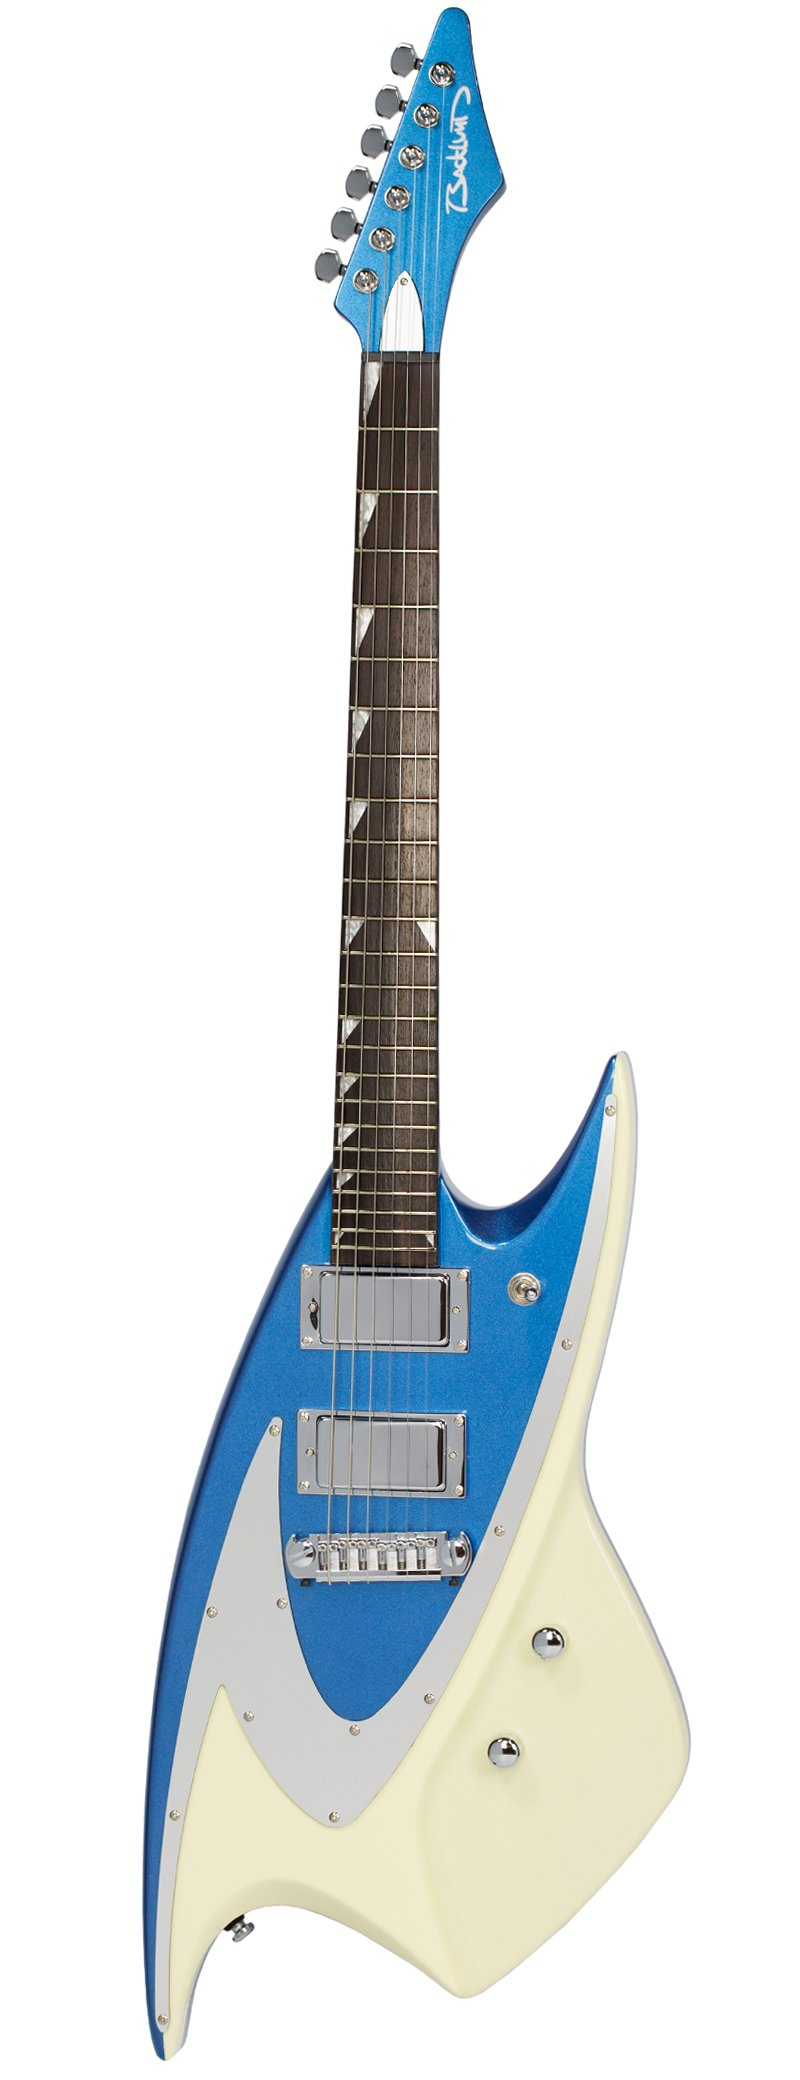 Eastwood Guitars Backlund 400 Metallic Blue Full Front